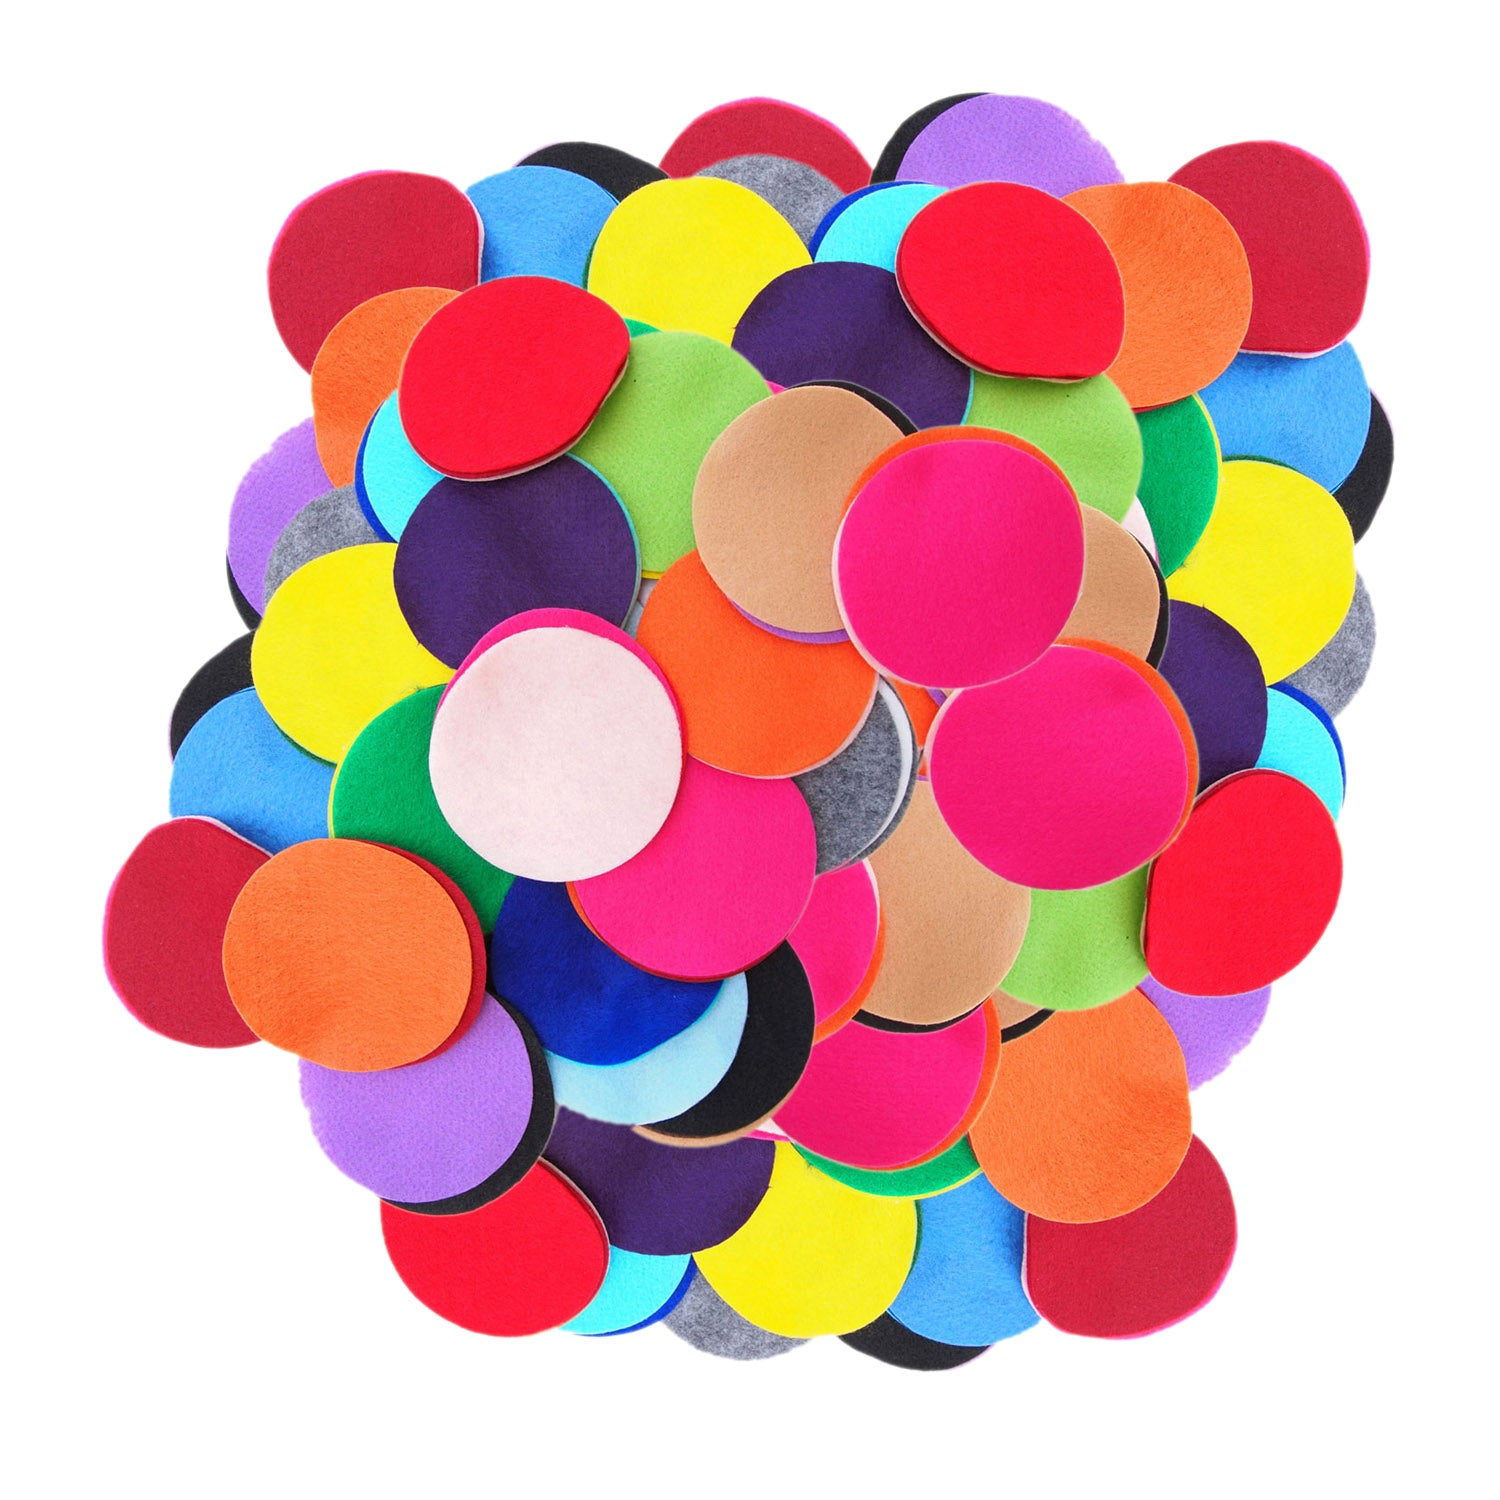 Playfully Ever After 2 Inch Mixed Color Assortment 44pc Stiff Felt Circles